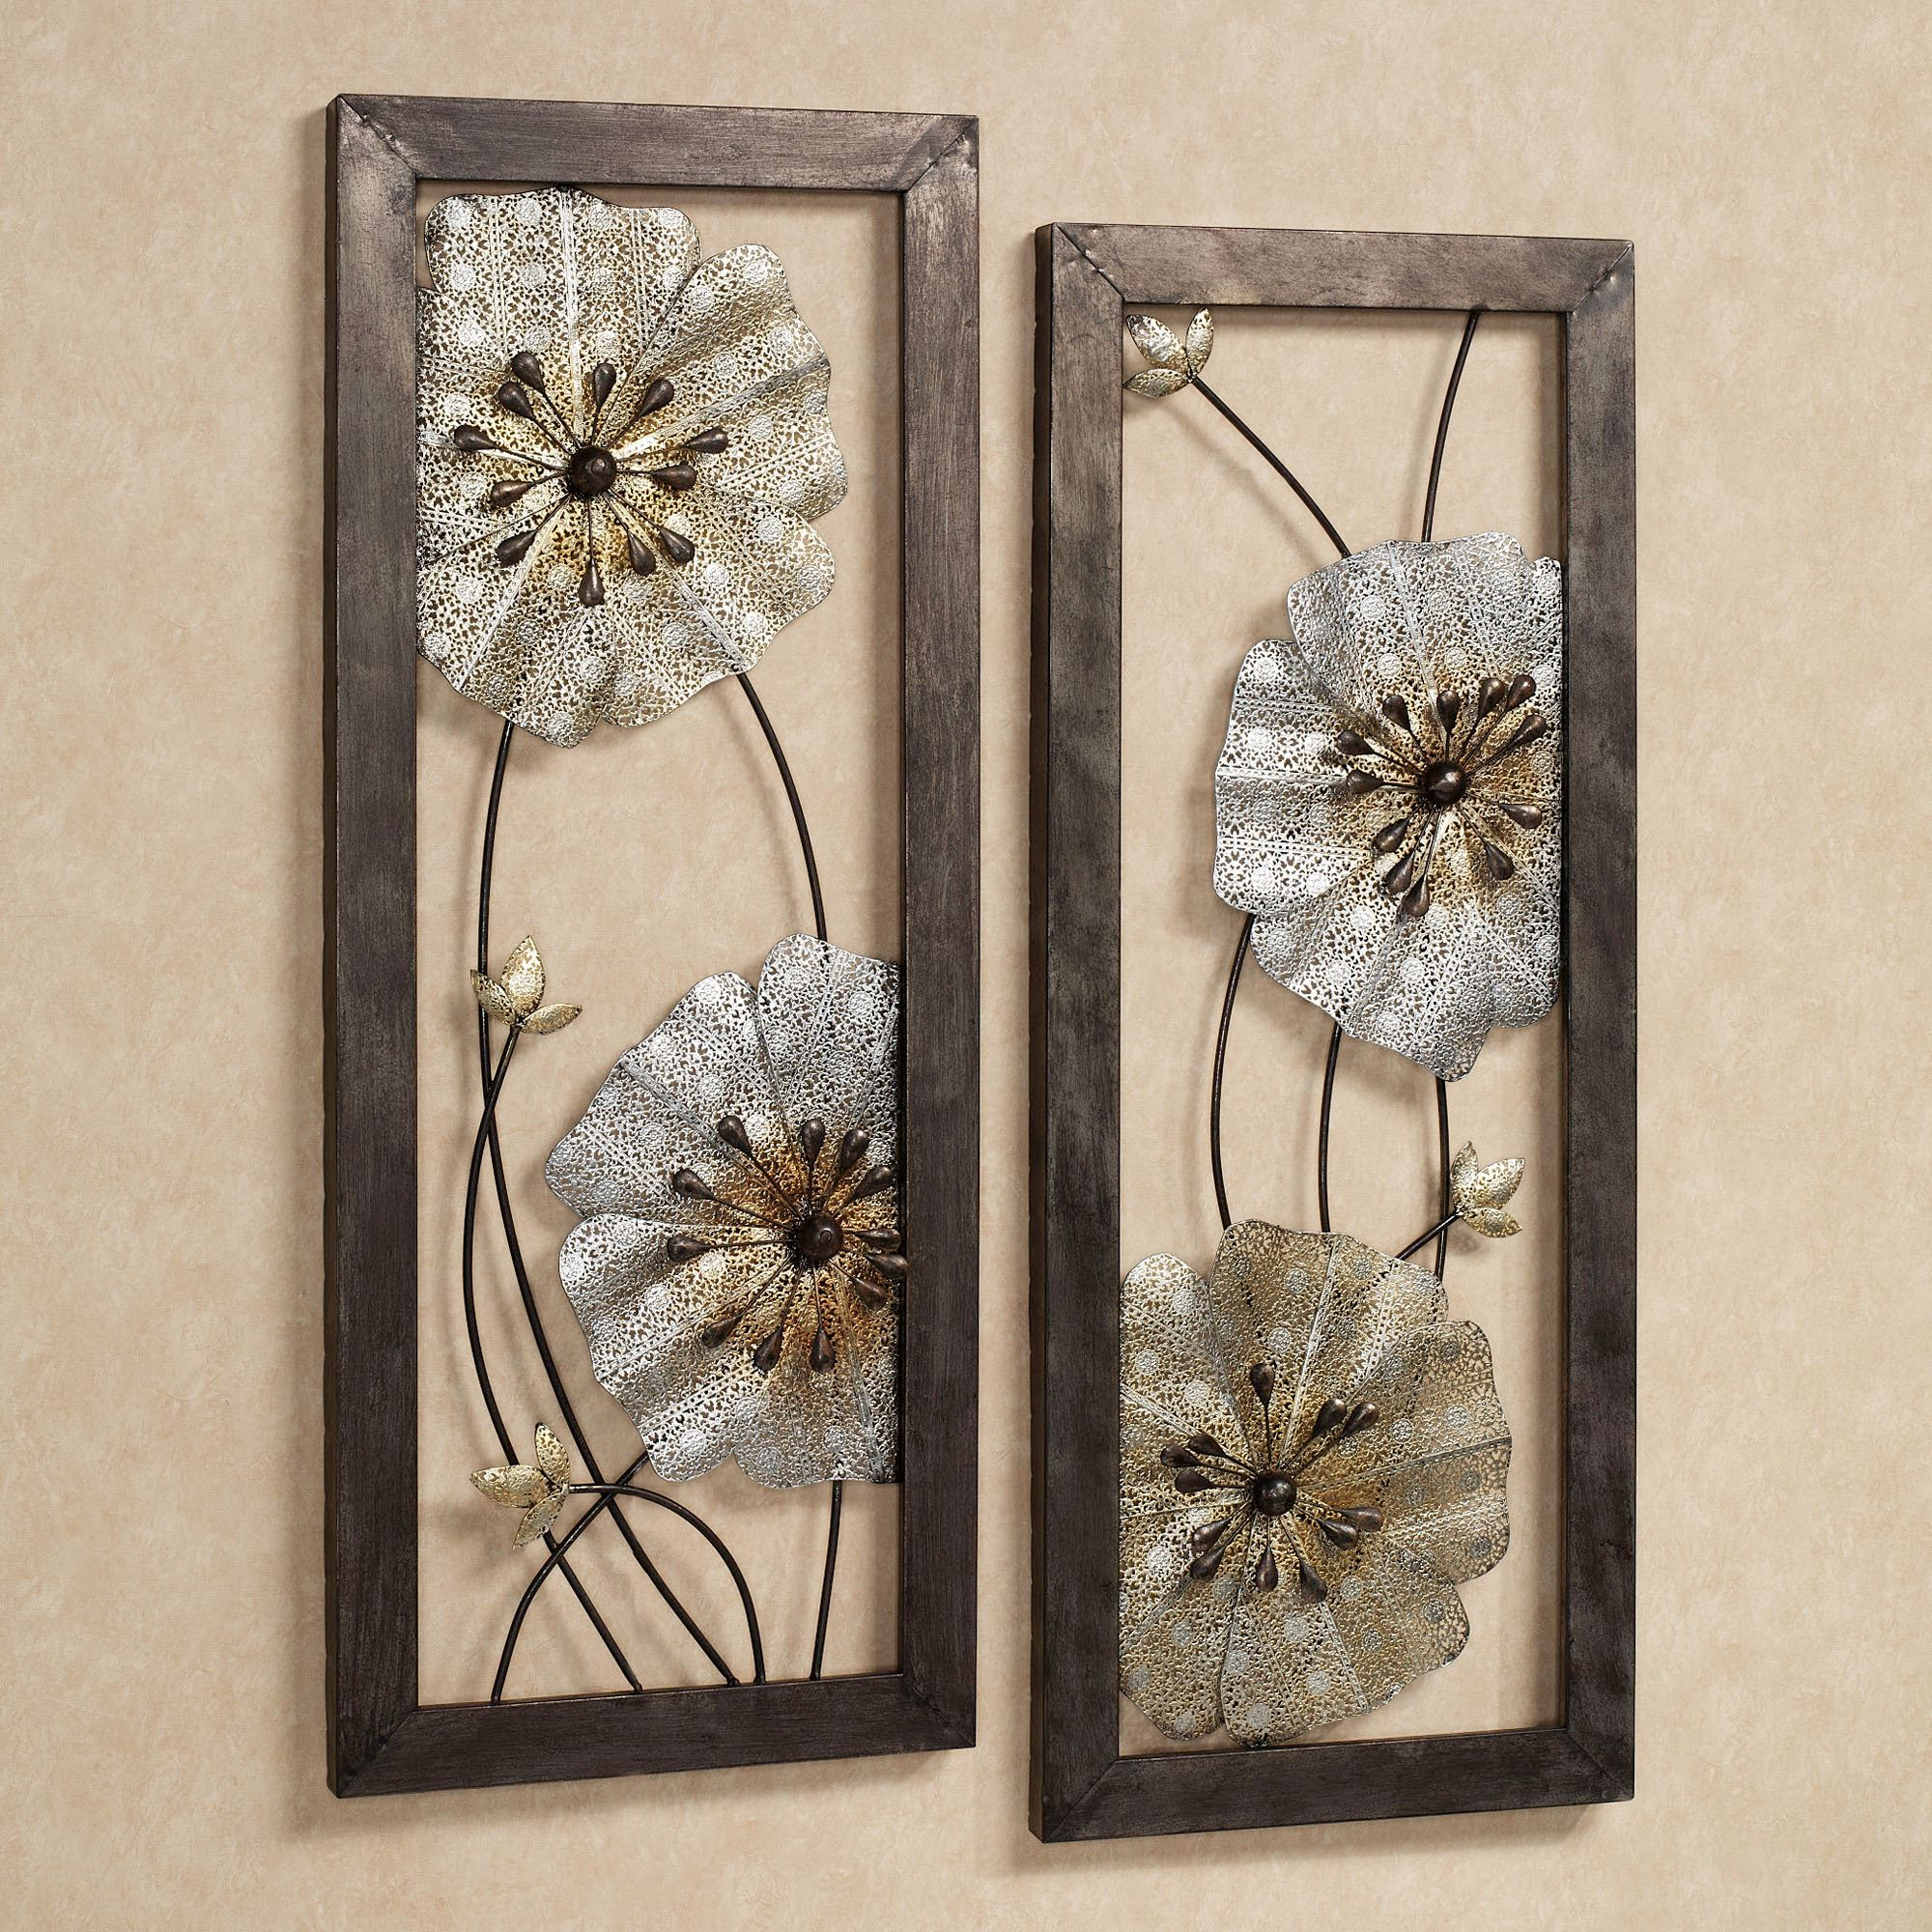 FREE SHIPPING. Malacia Floral Metal Wall Art ...